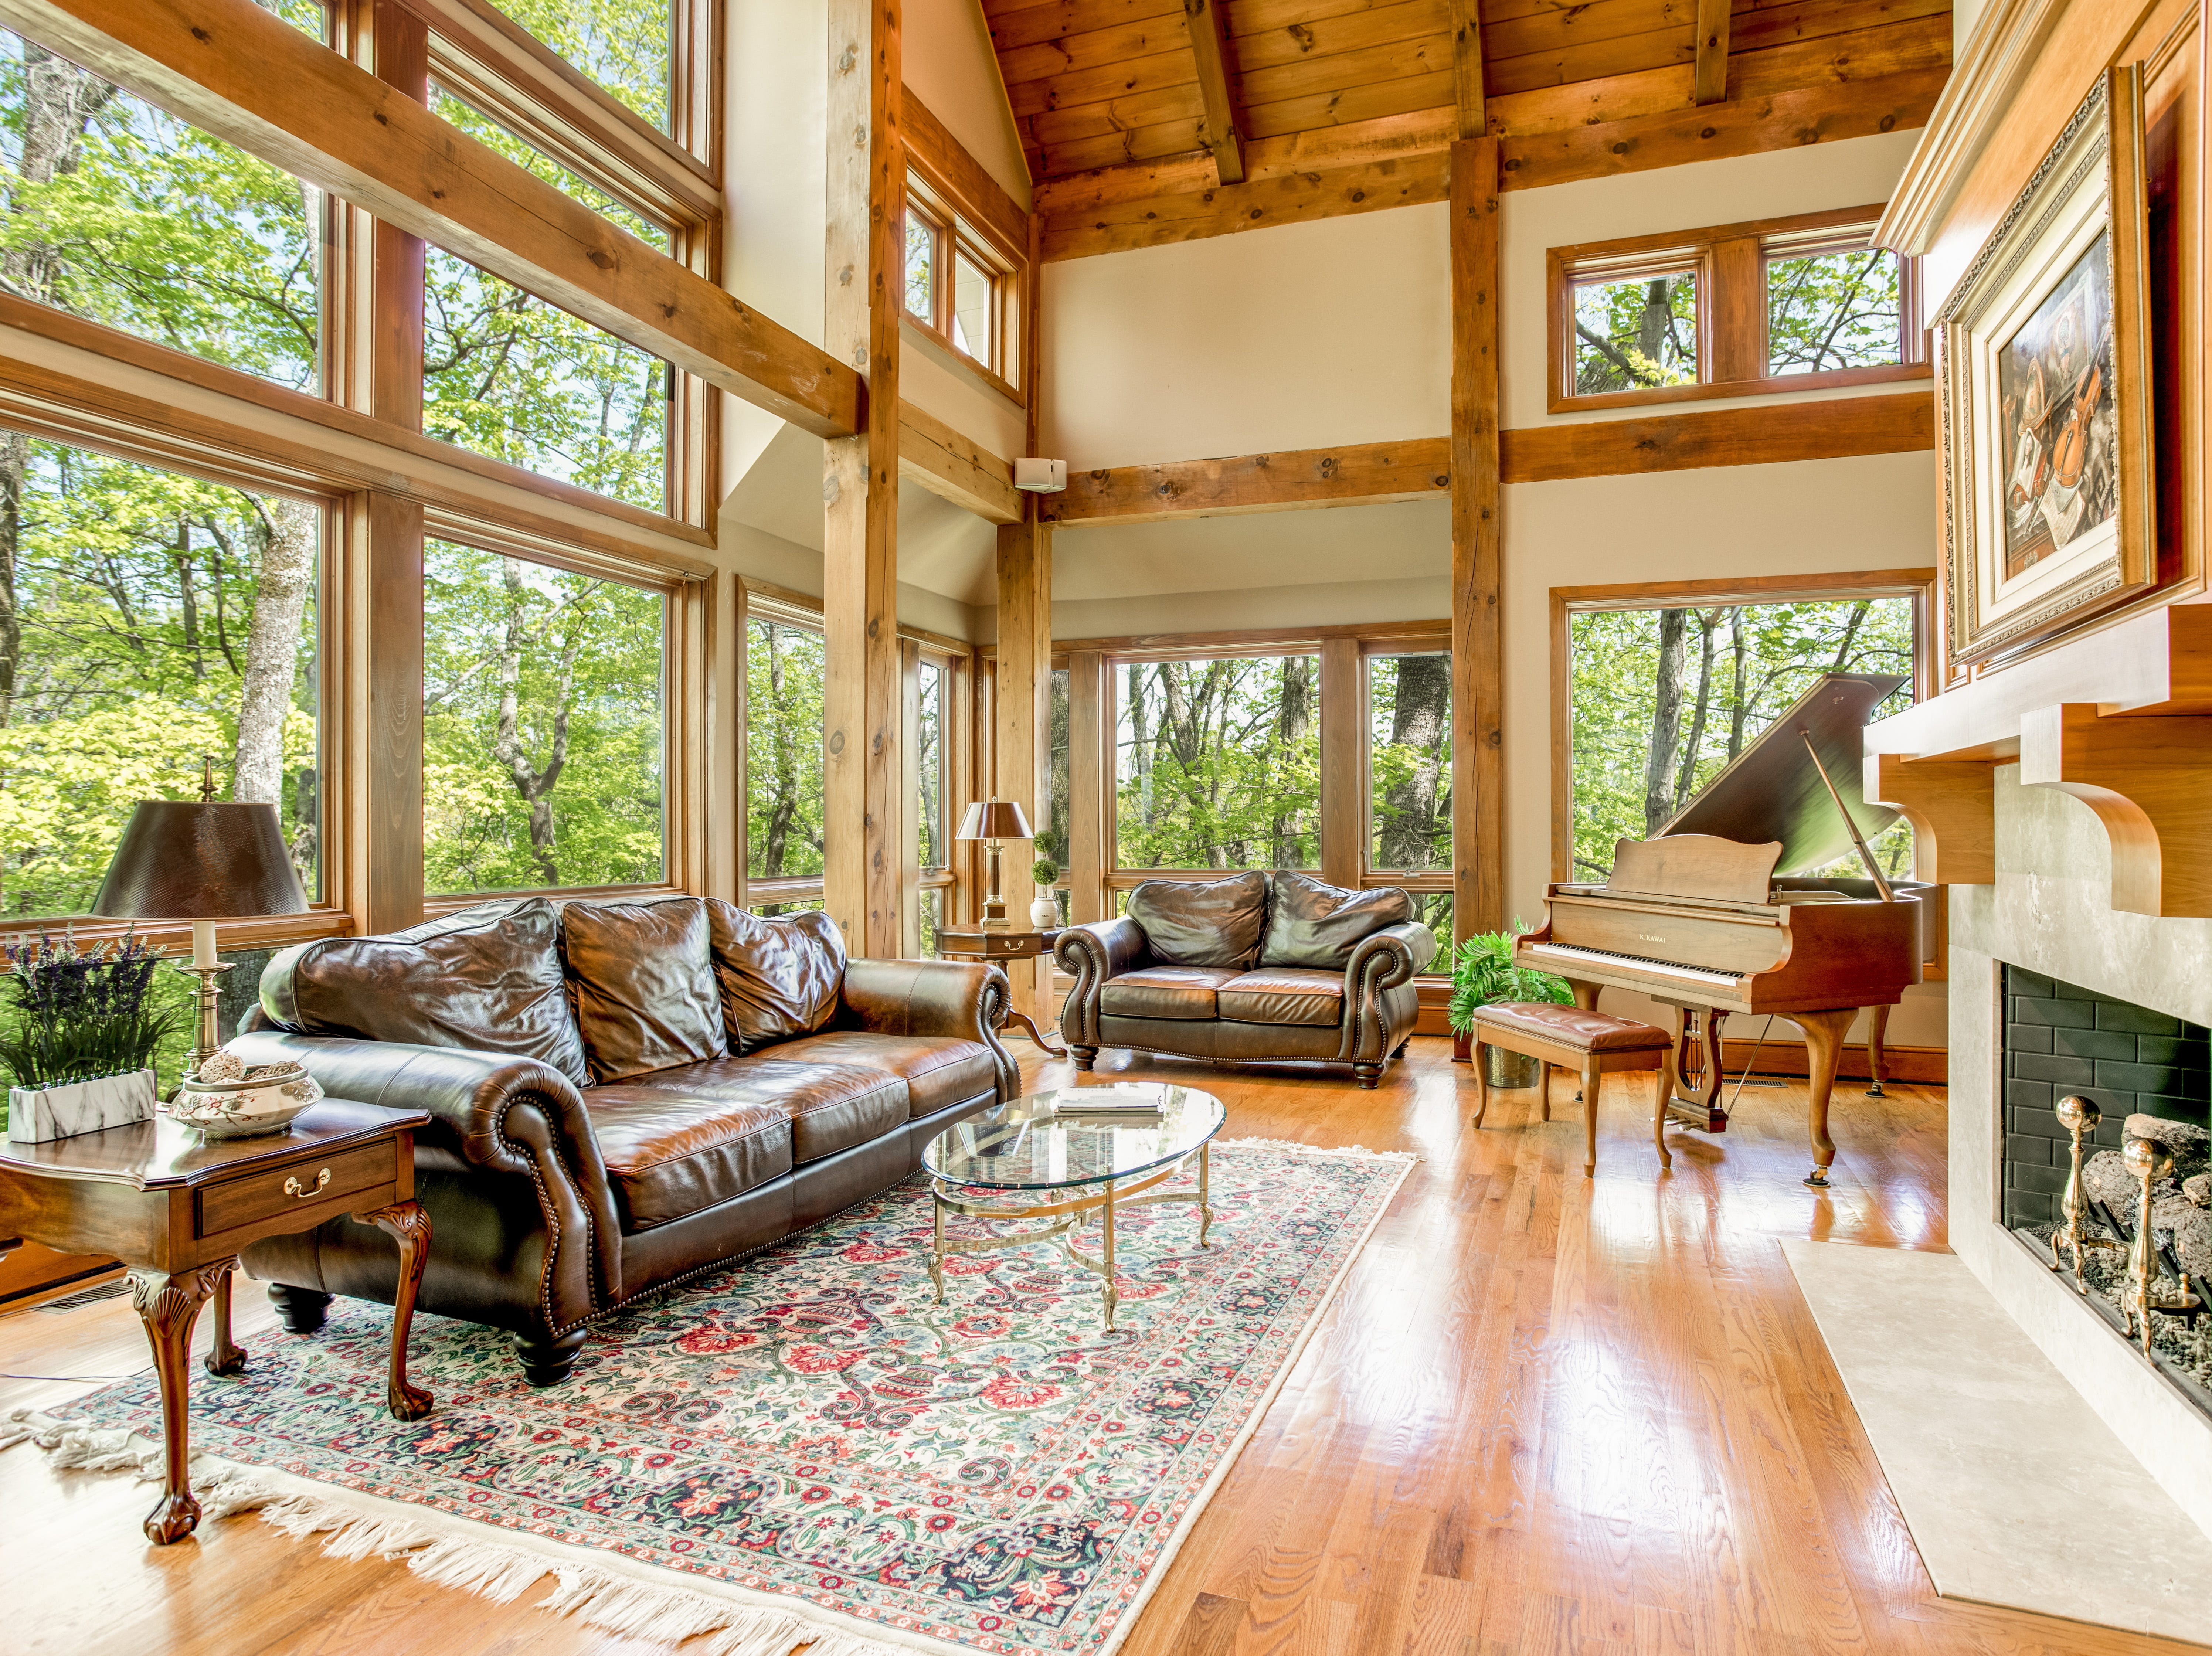 The home's main living space is full of windows and is post and beam construction, which exposes the beams for a rustic, mountain look.